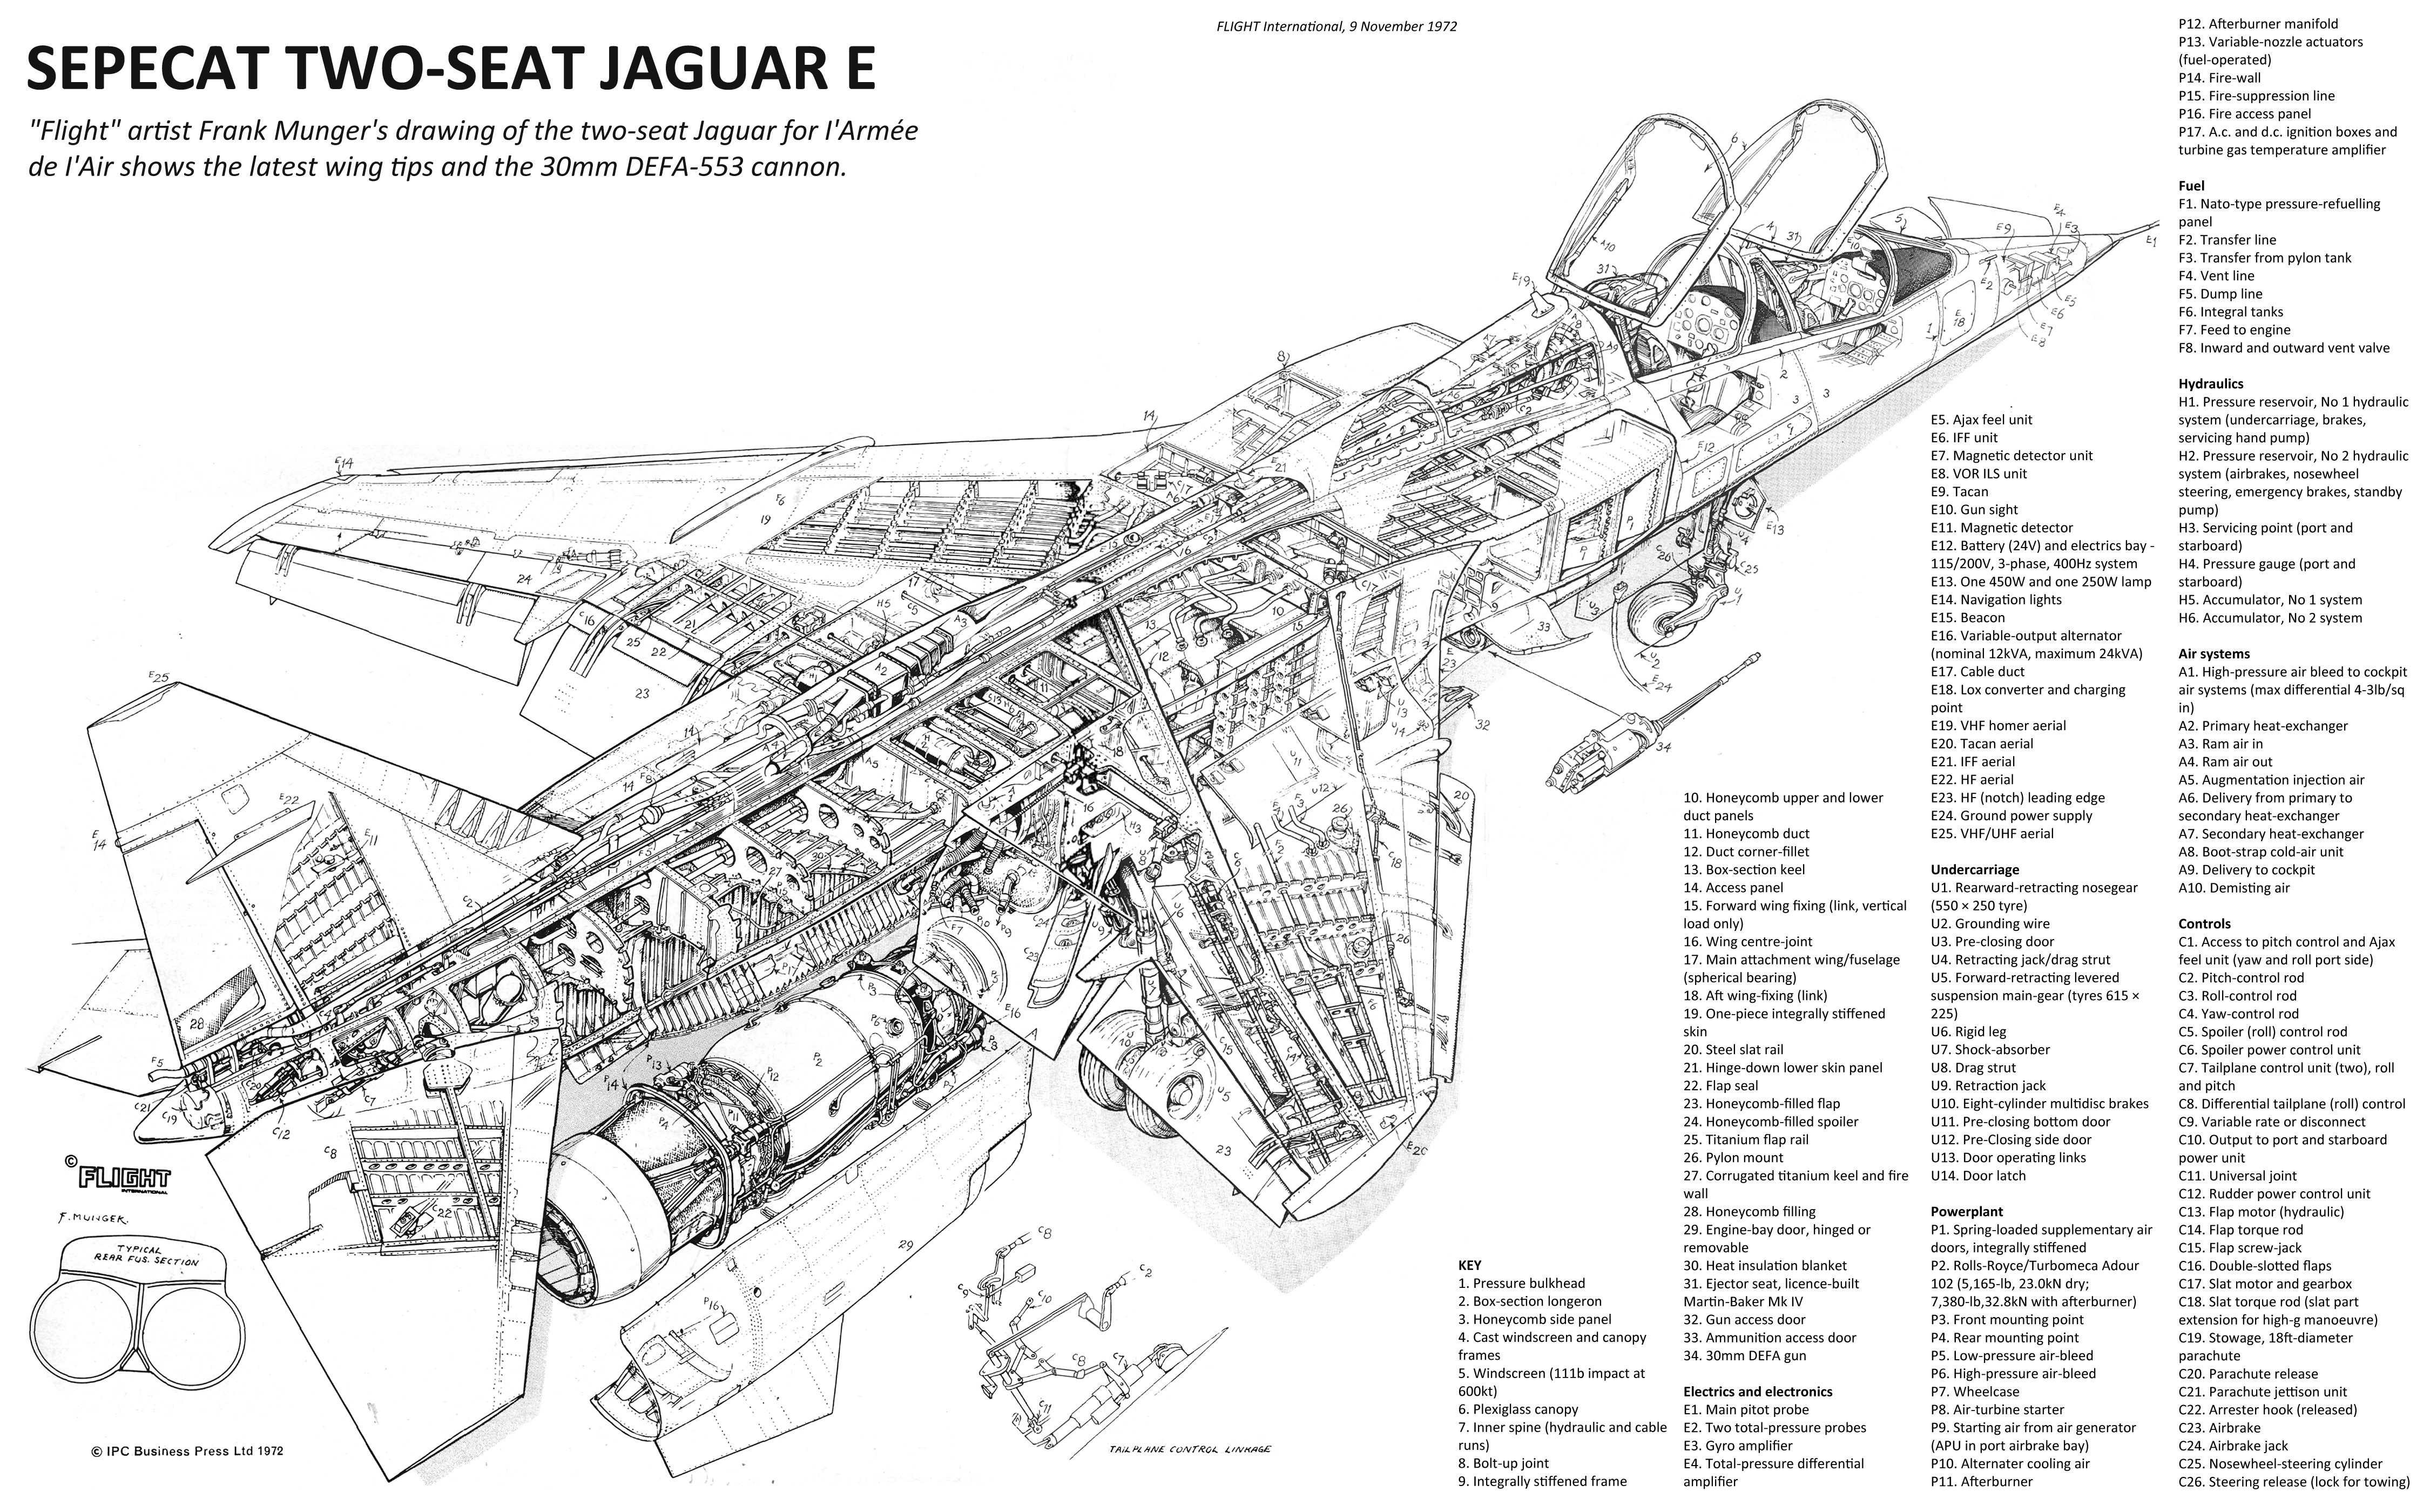 Jaguar E, Cutaway, Aircraft Design, War Machine, Rockets, Military Aircraft,